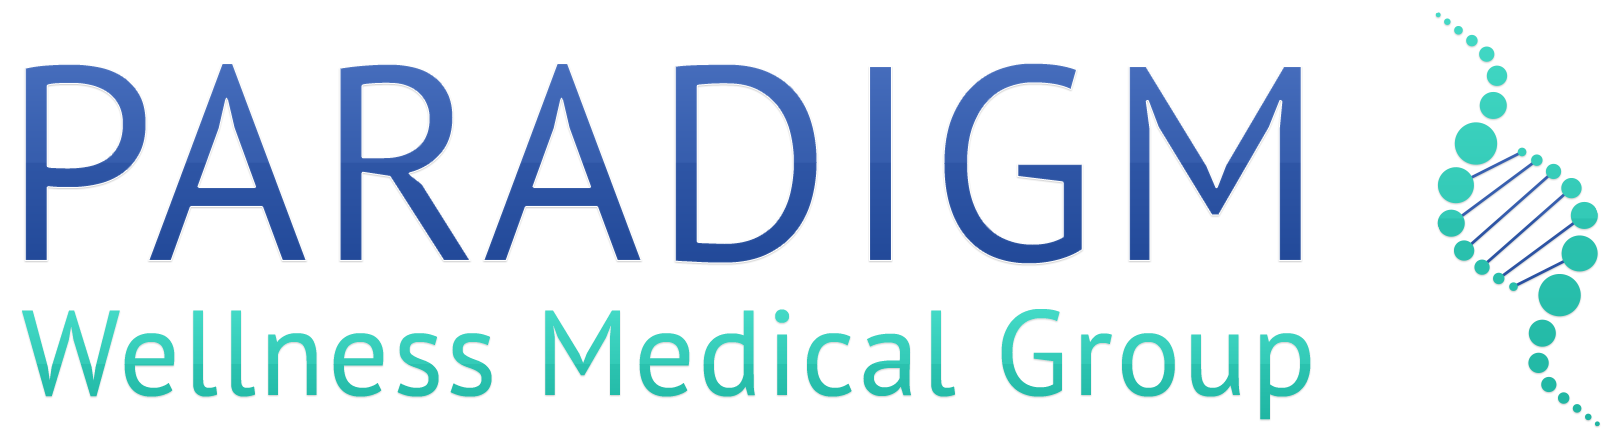 Paradigm Wellness Medical Group